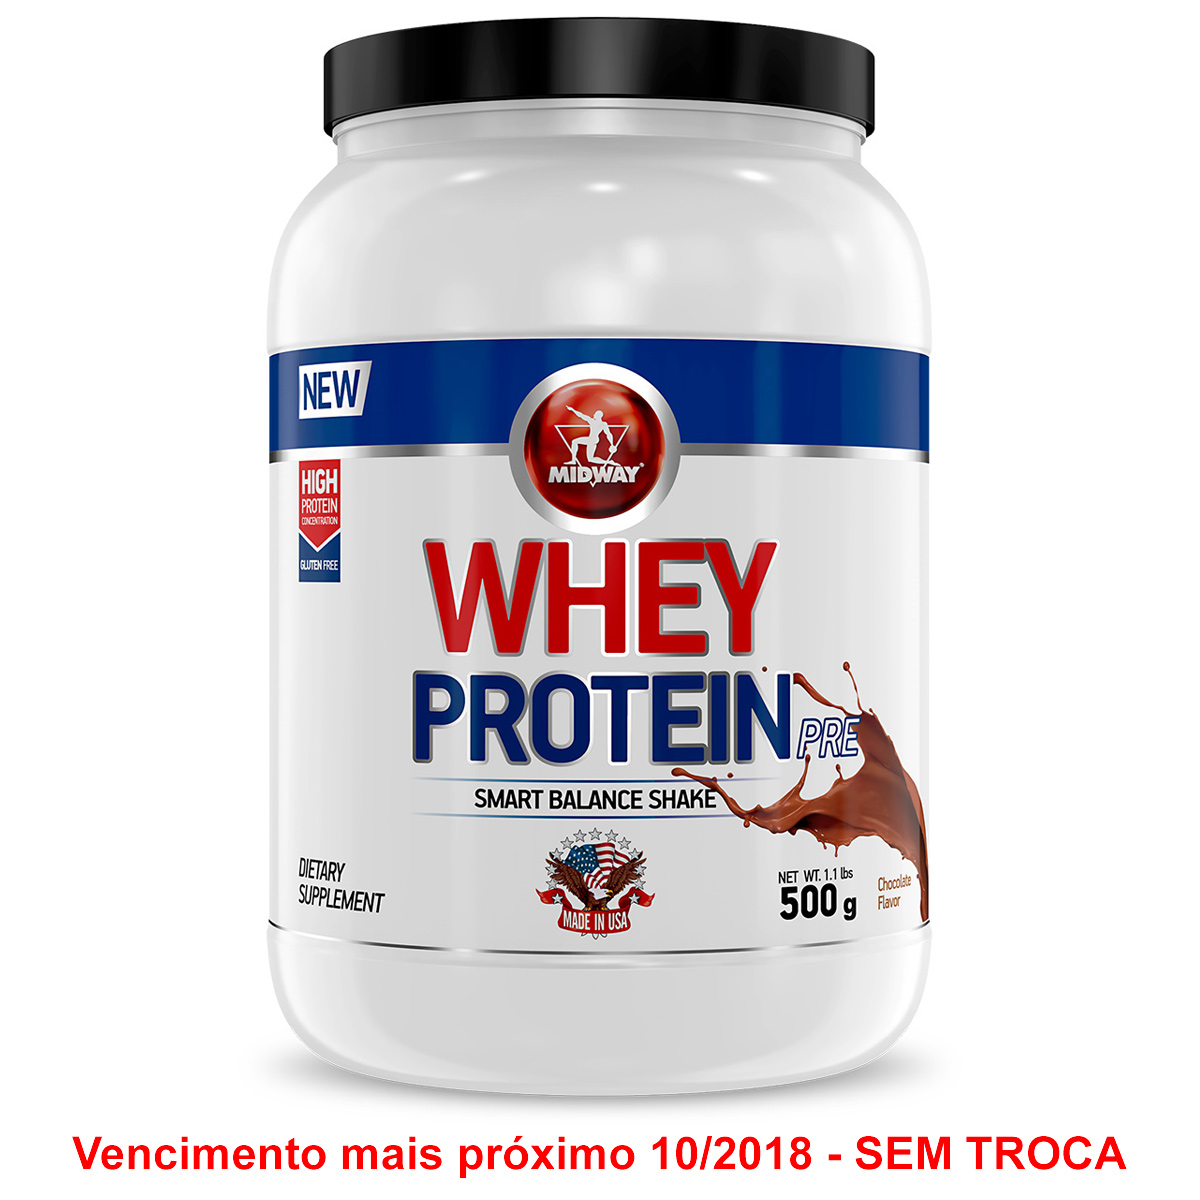 whey protein - Whey Protein Pré Midway 500g - R$ 16,99